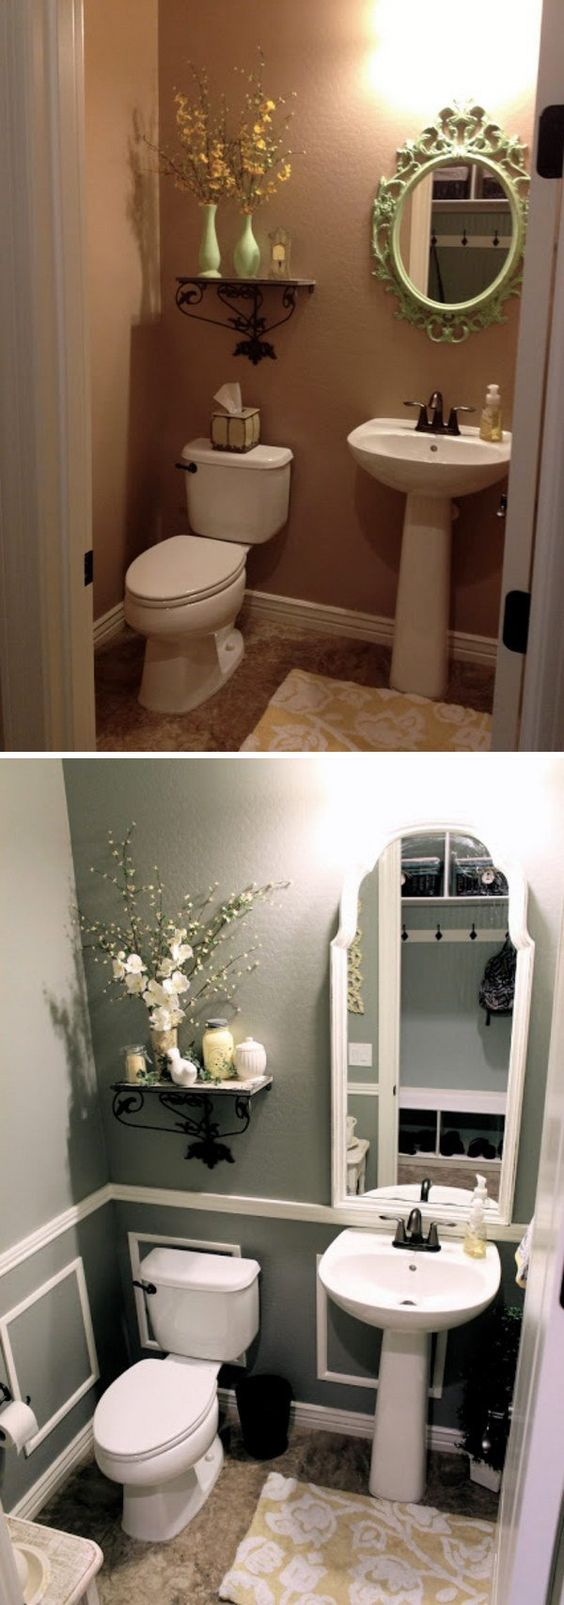 37 Small Bathroom Makeoversbefore And After Pics  Small Enchanting Pictures Of Small Bathroom Makeovers Inspiration Design